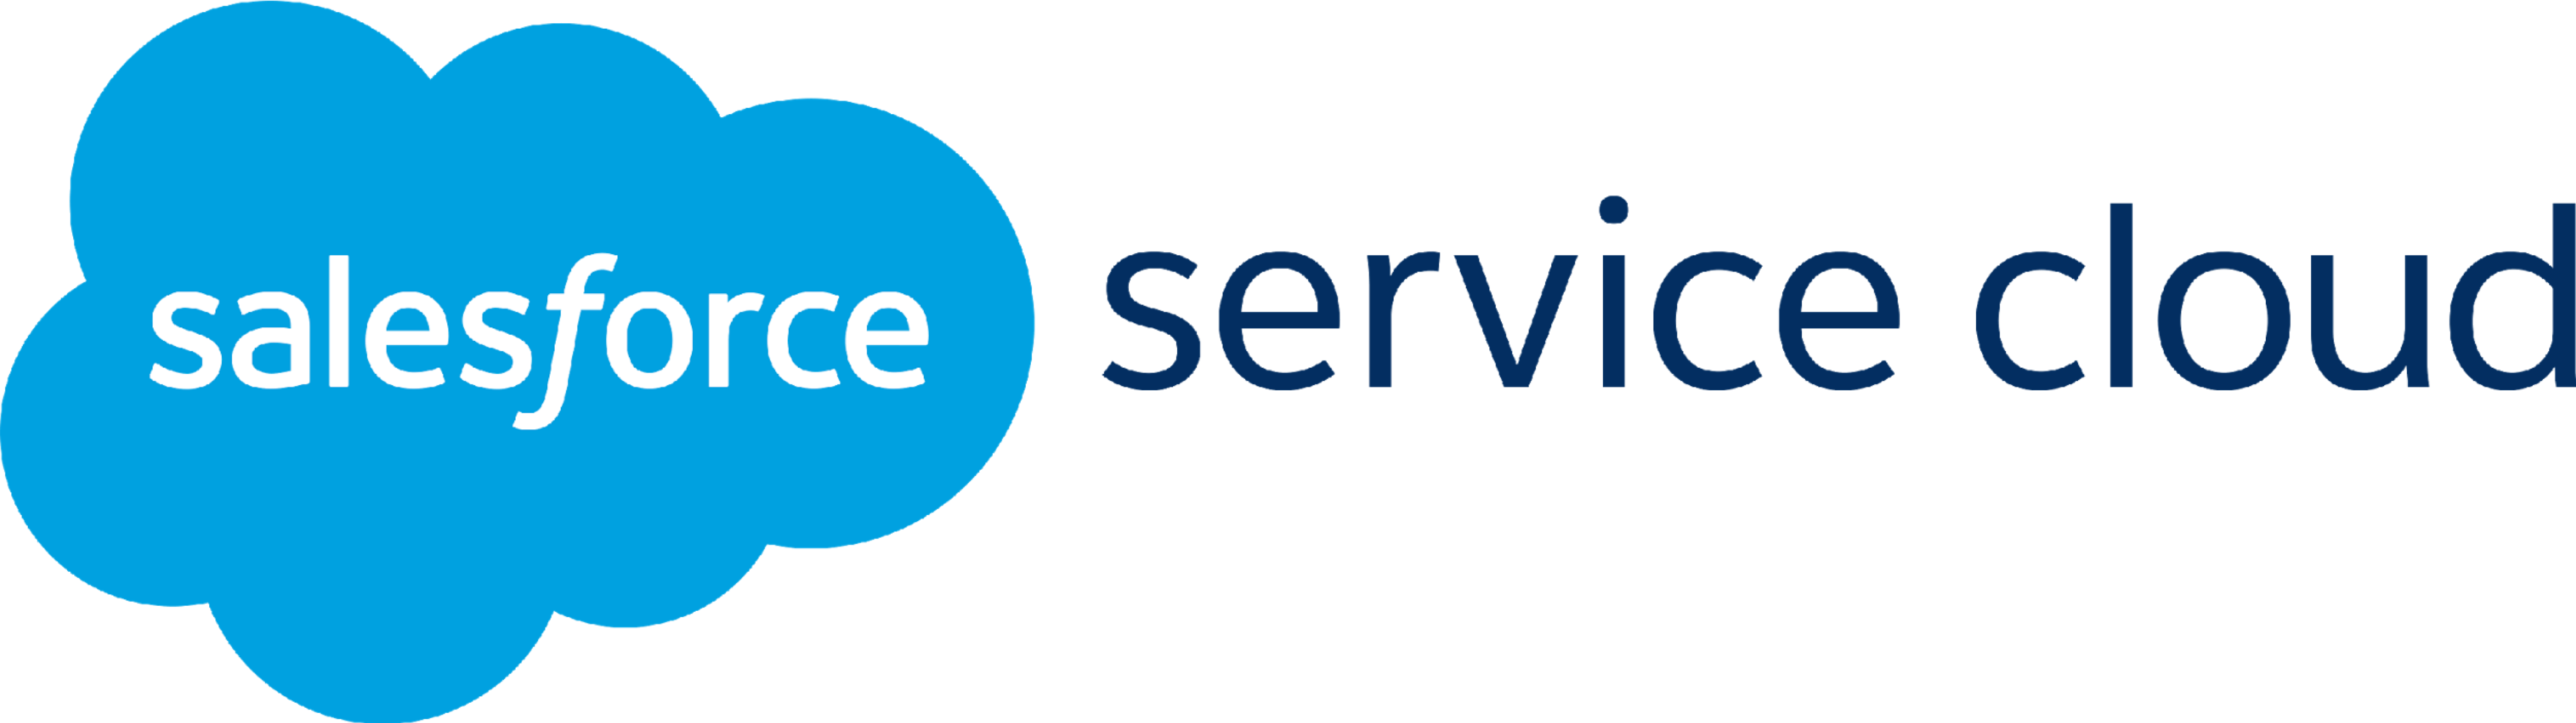 Salesforce Service Cloud logo